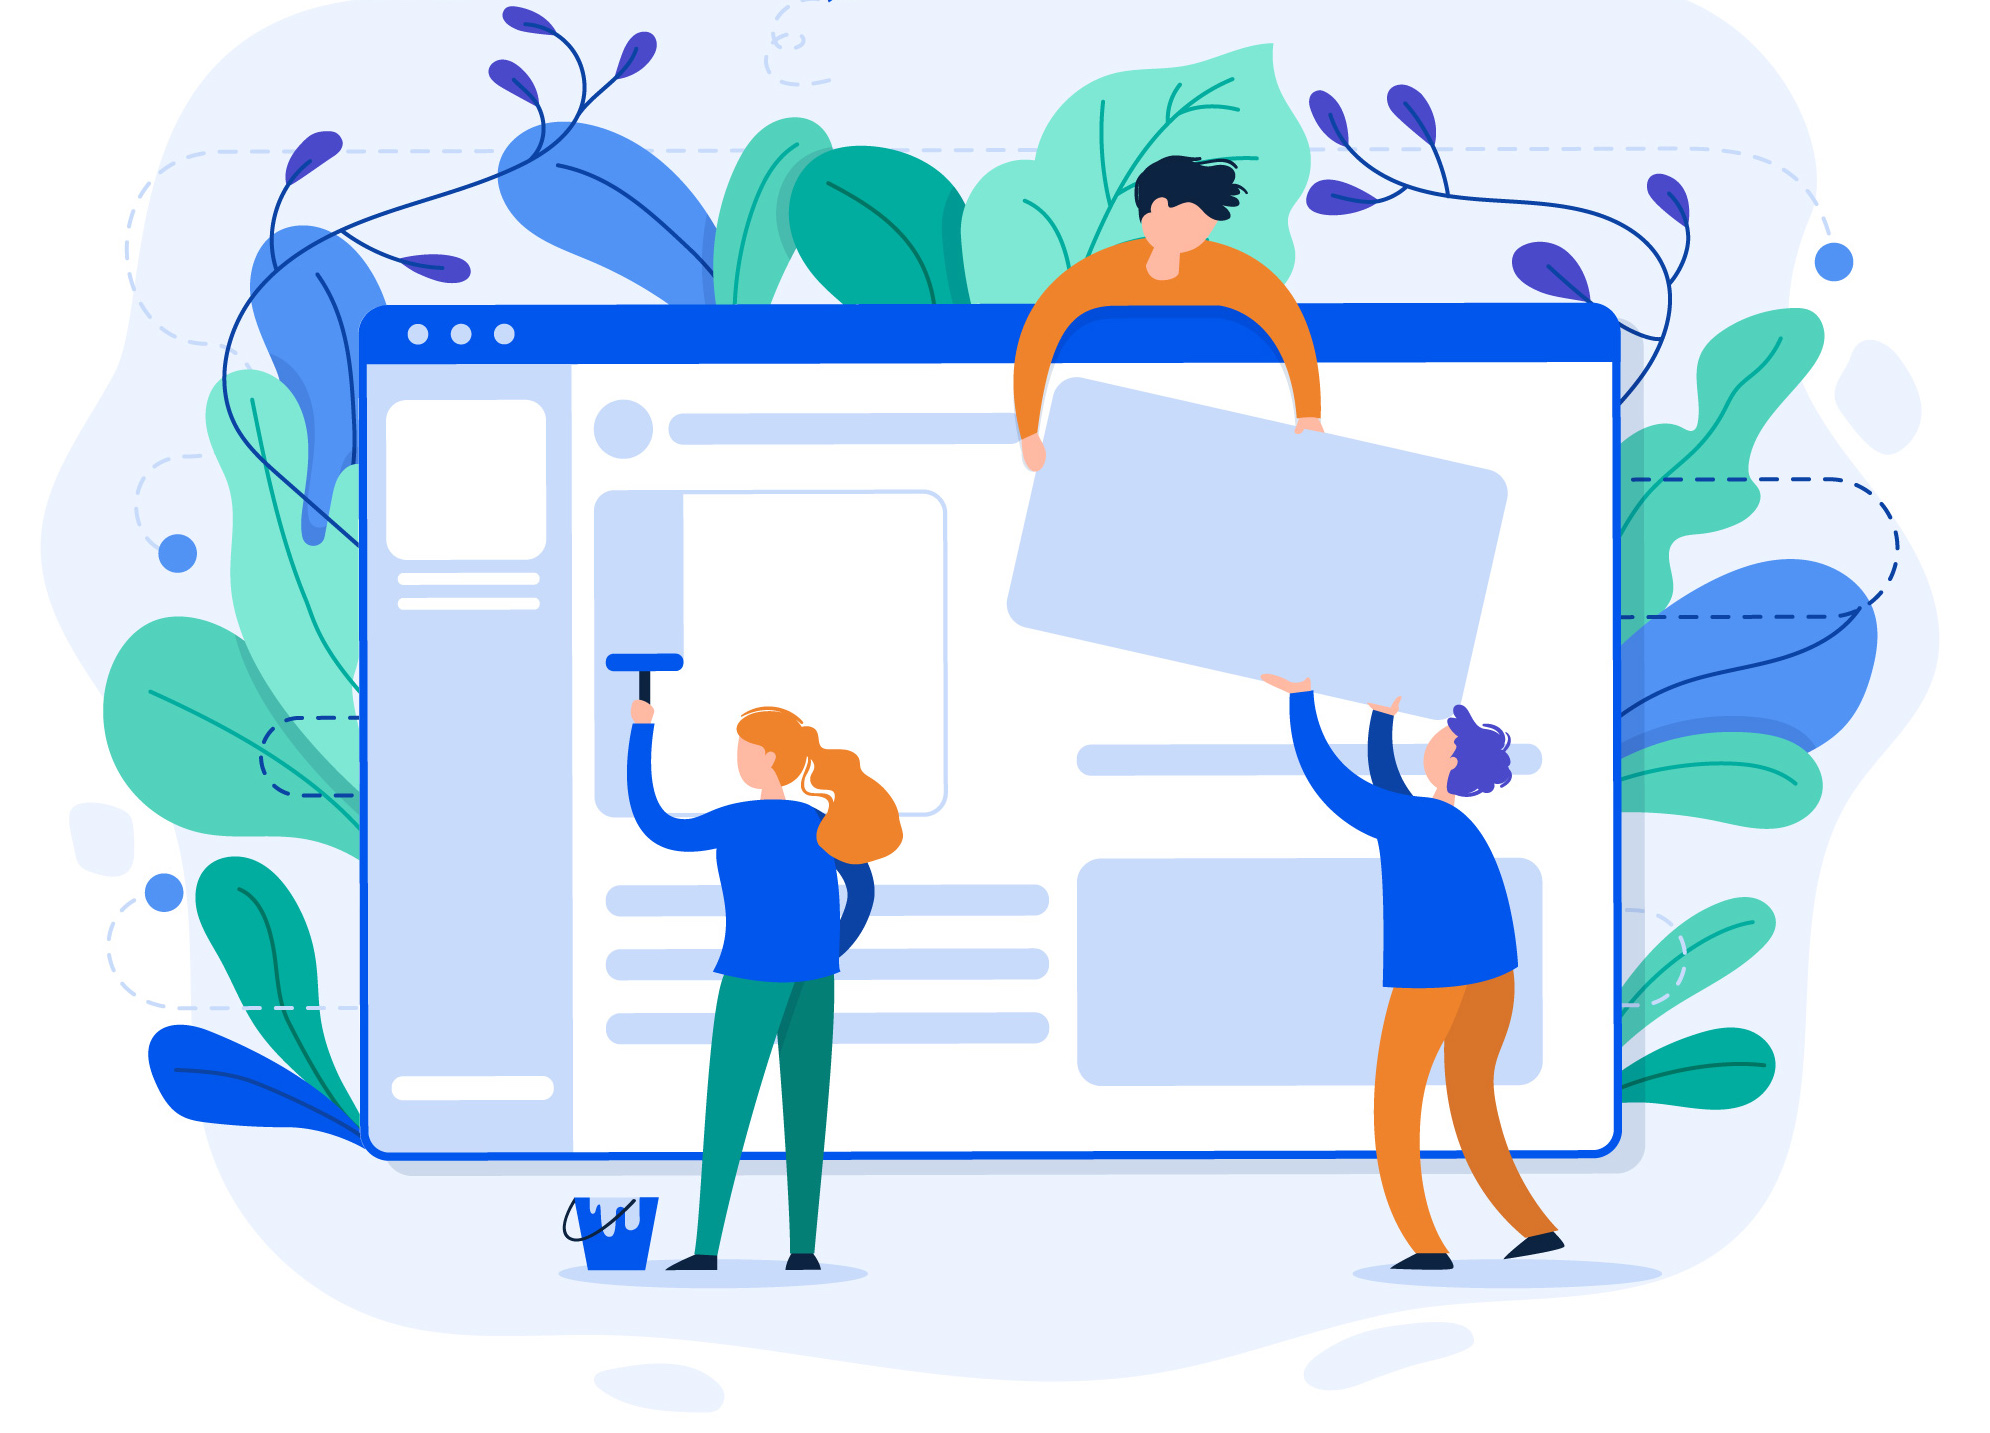 an illustration of three people literally building a webpage, placing tiles and painting it